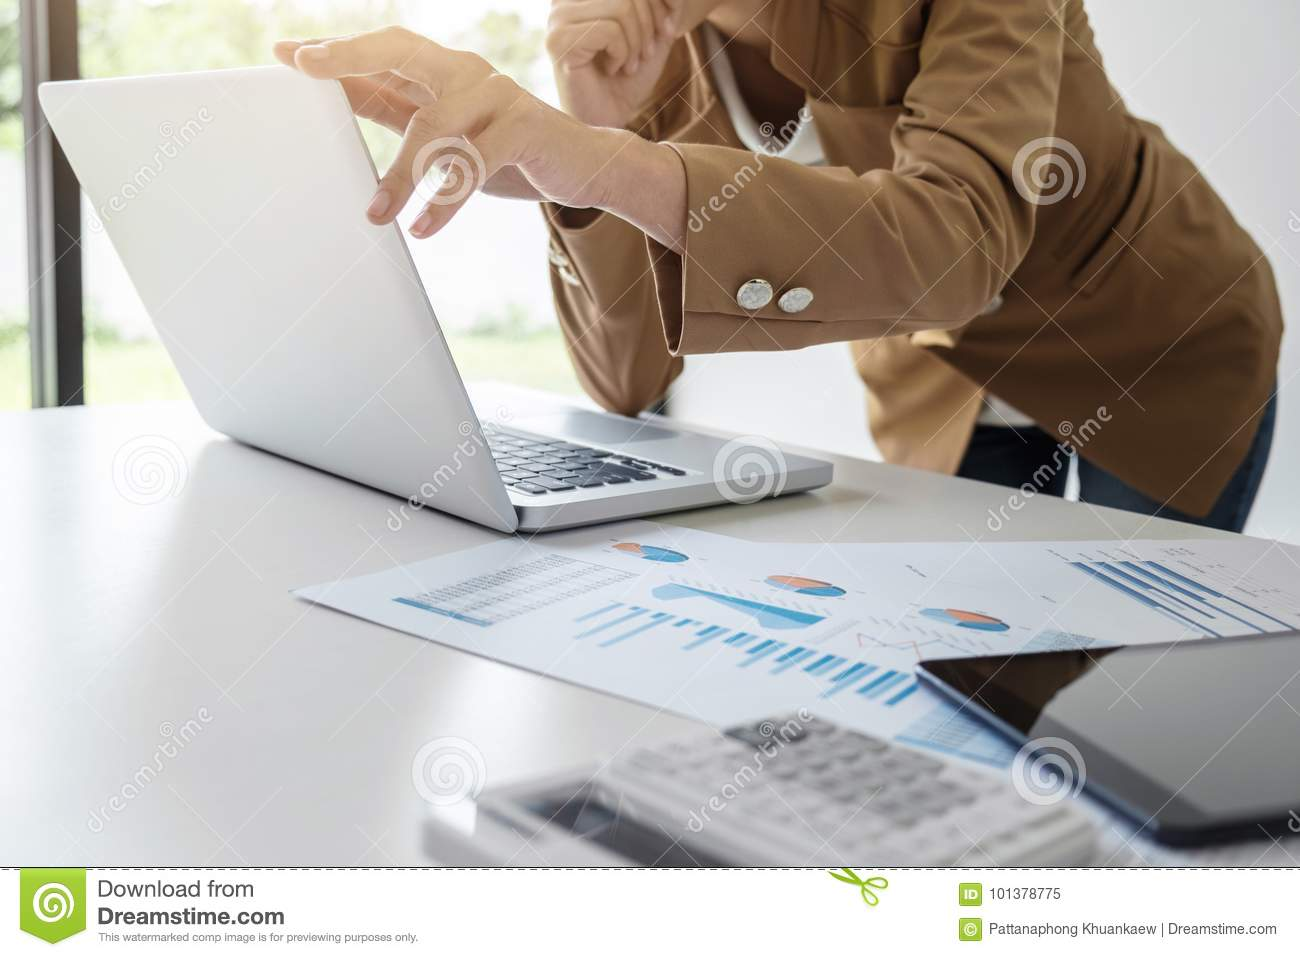 Elegant businesswoman leader working on laptop in a modern office, analyzing data and graph, using calculator calculate, young